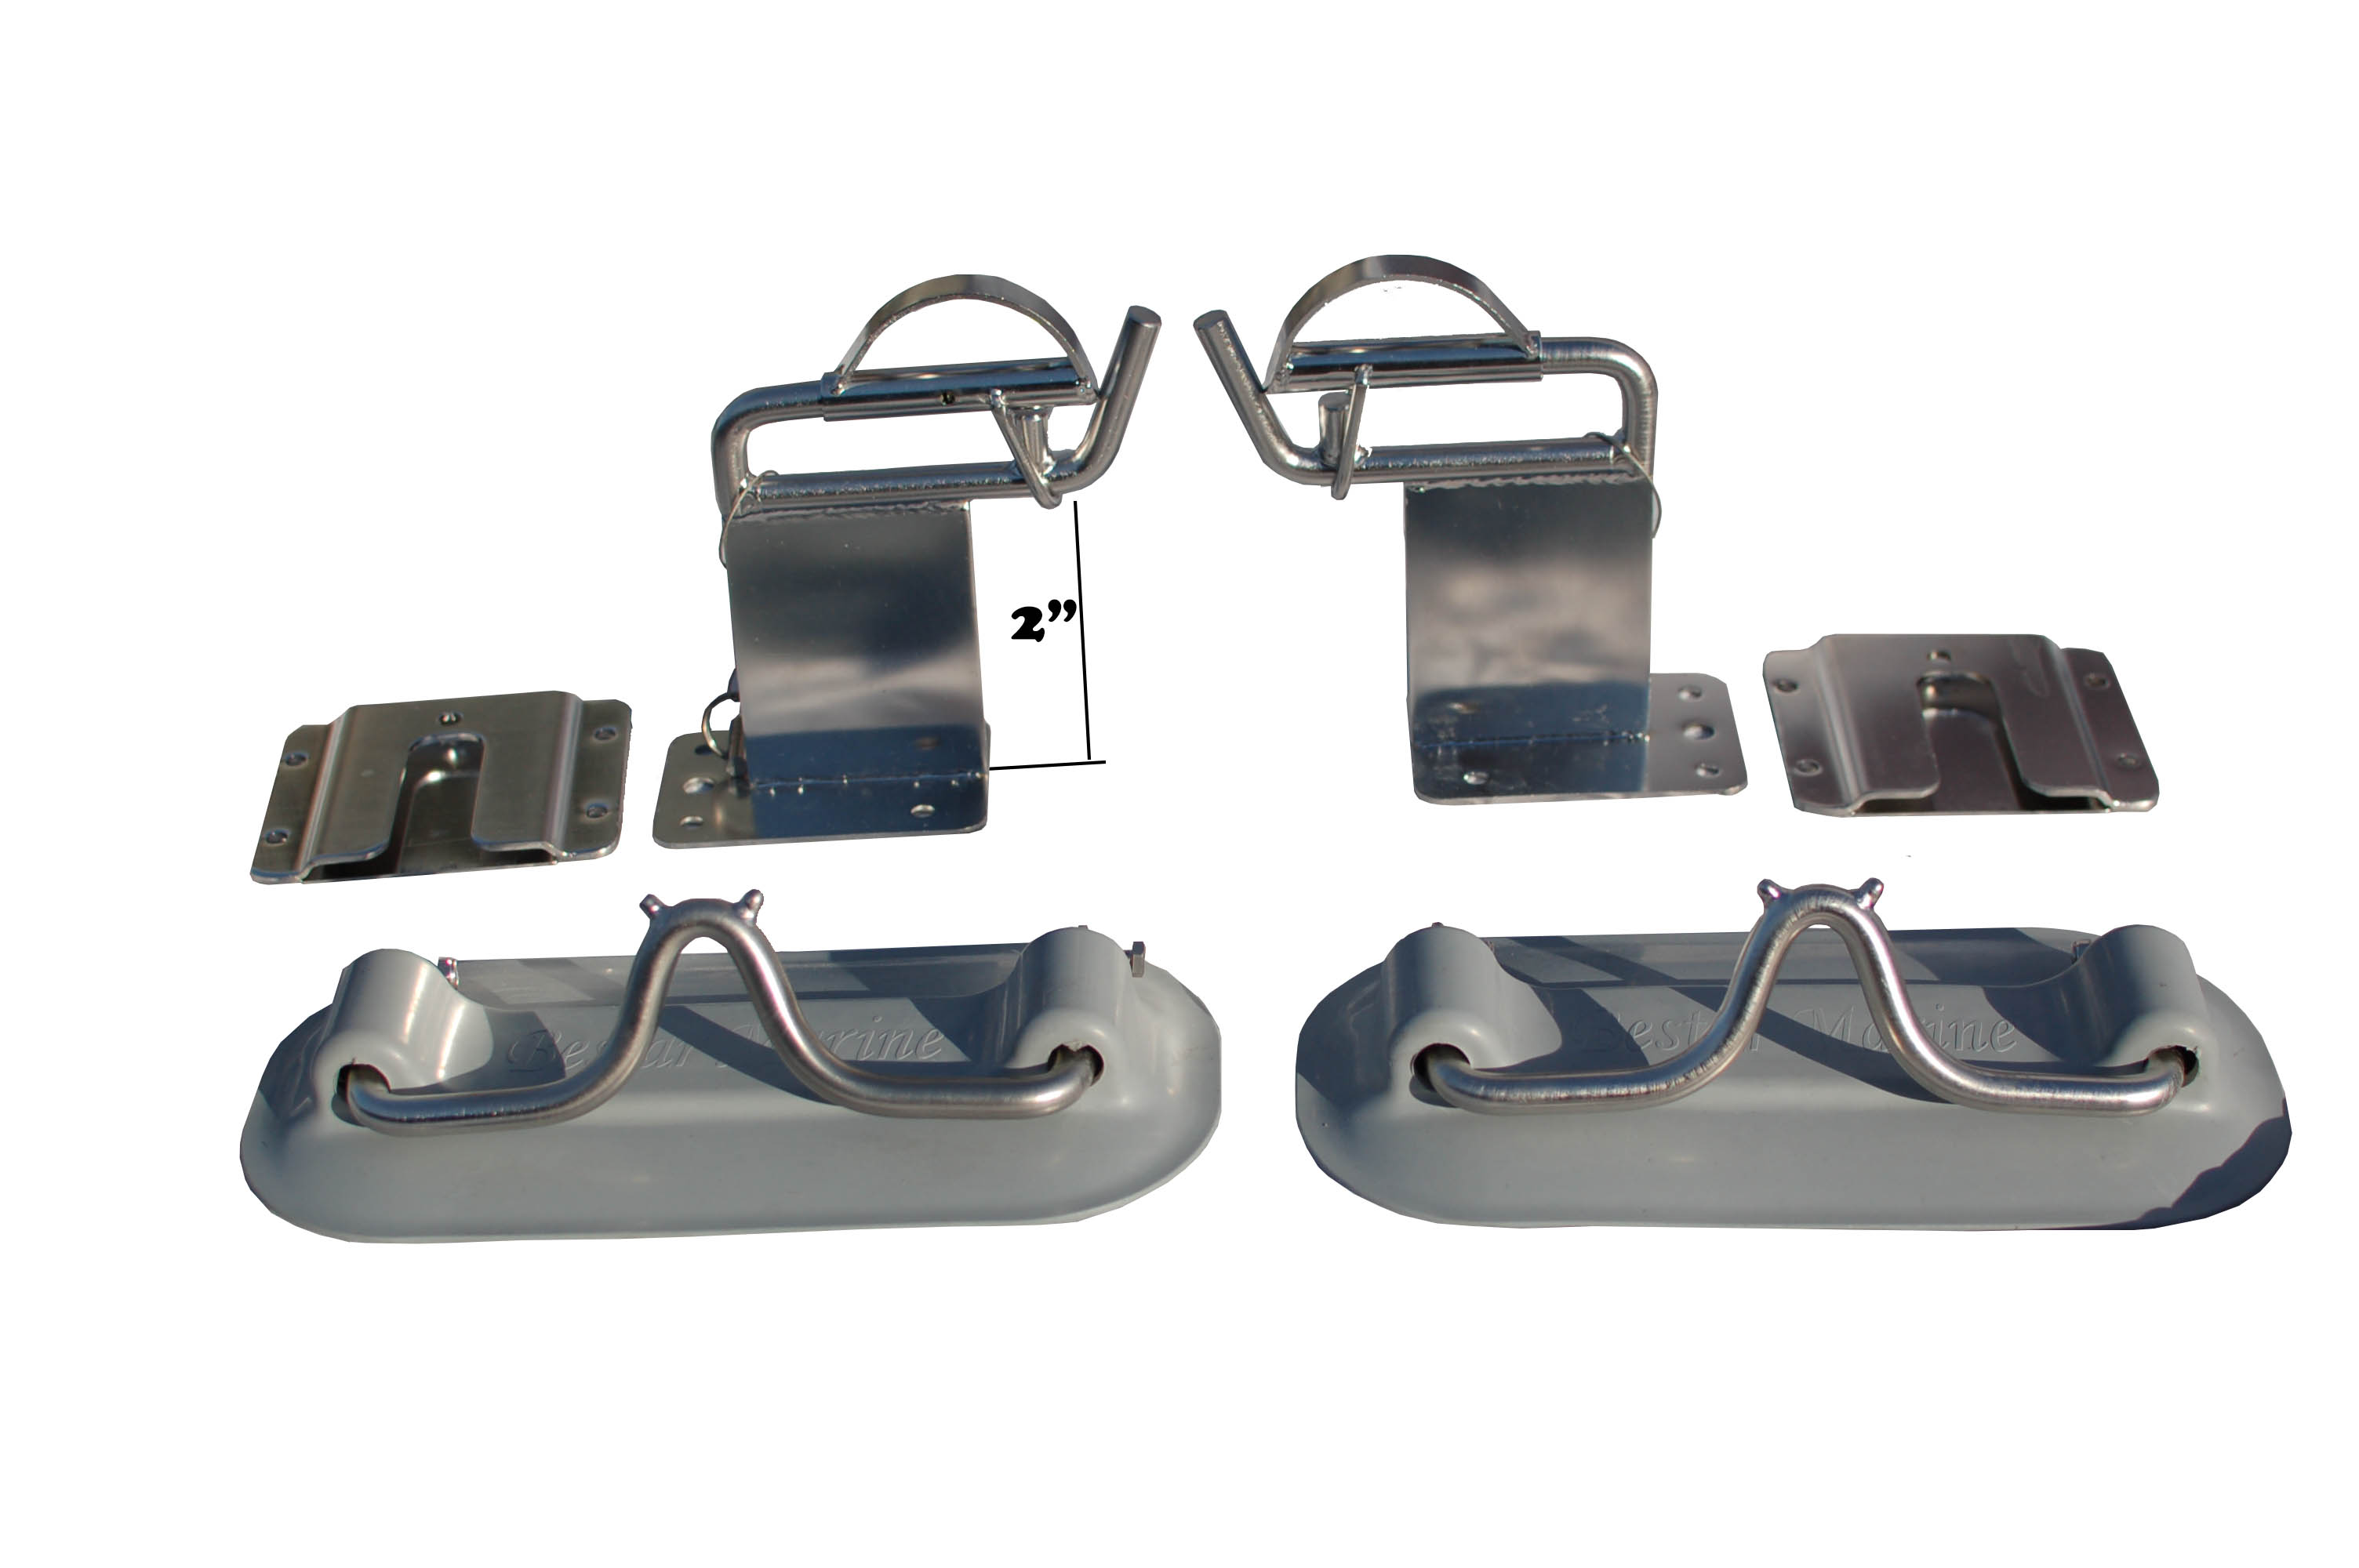 2 x Snap Davits for Inflatable Dinghy Swim Platform with Quick Release kit